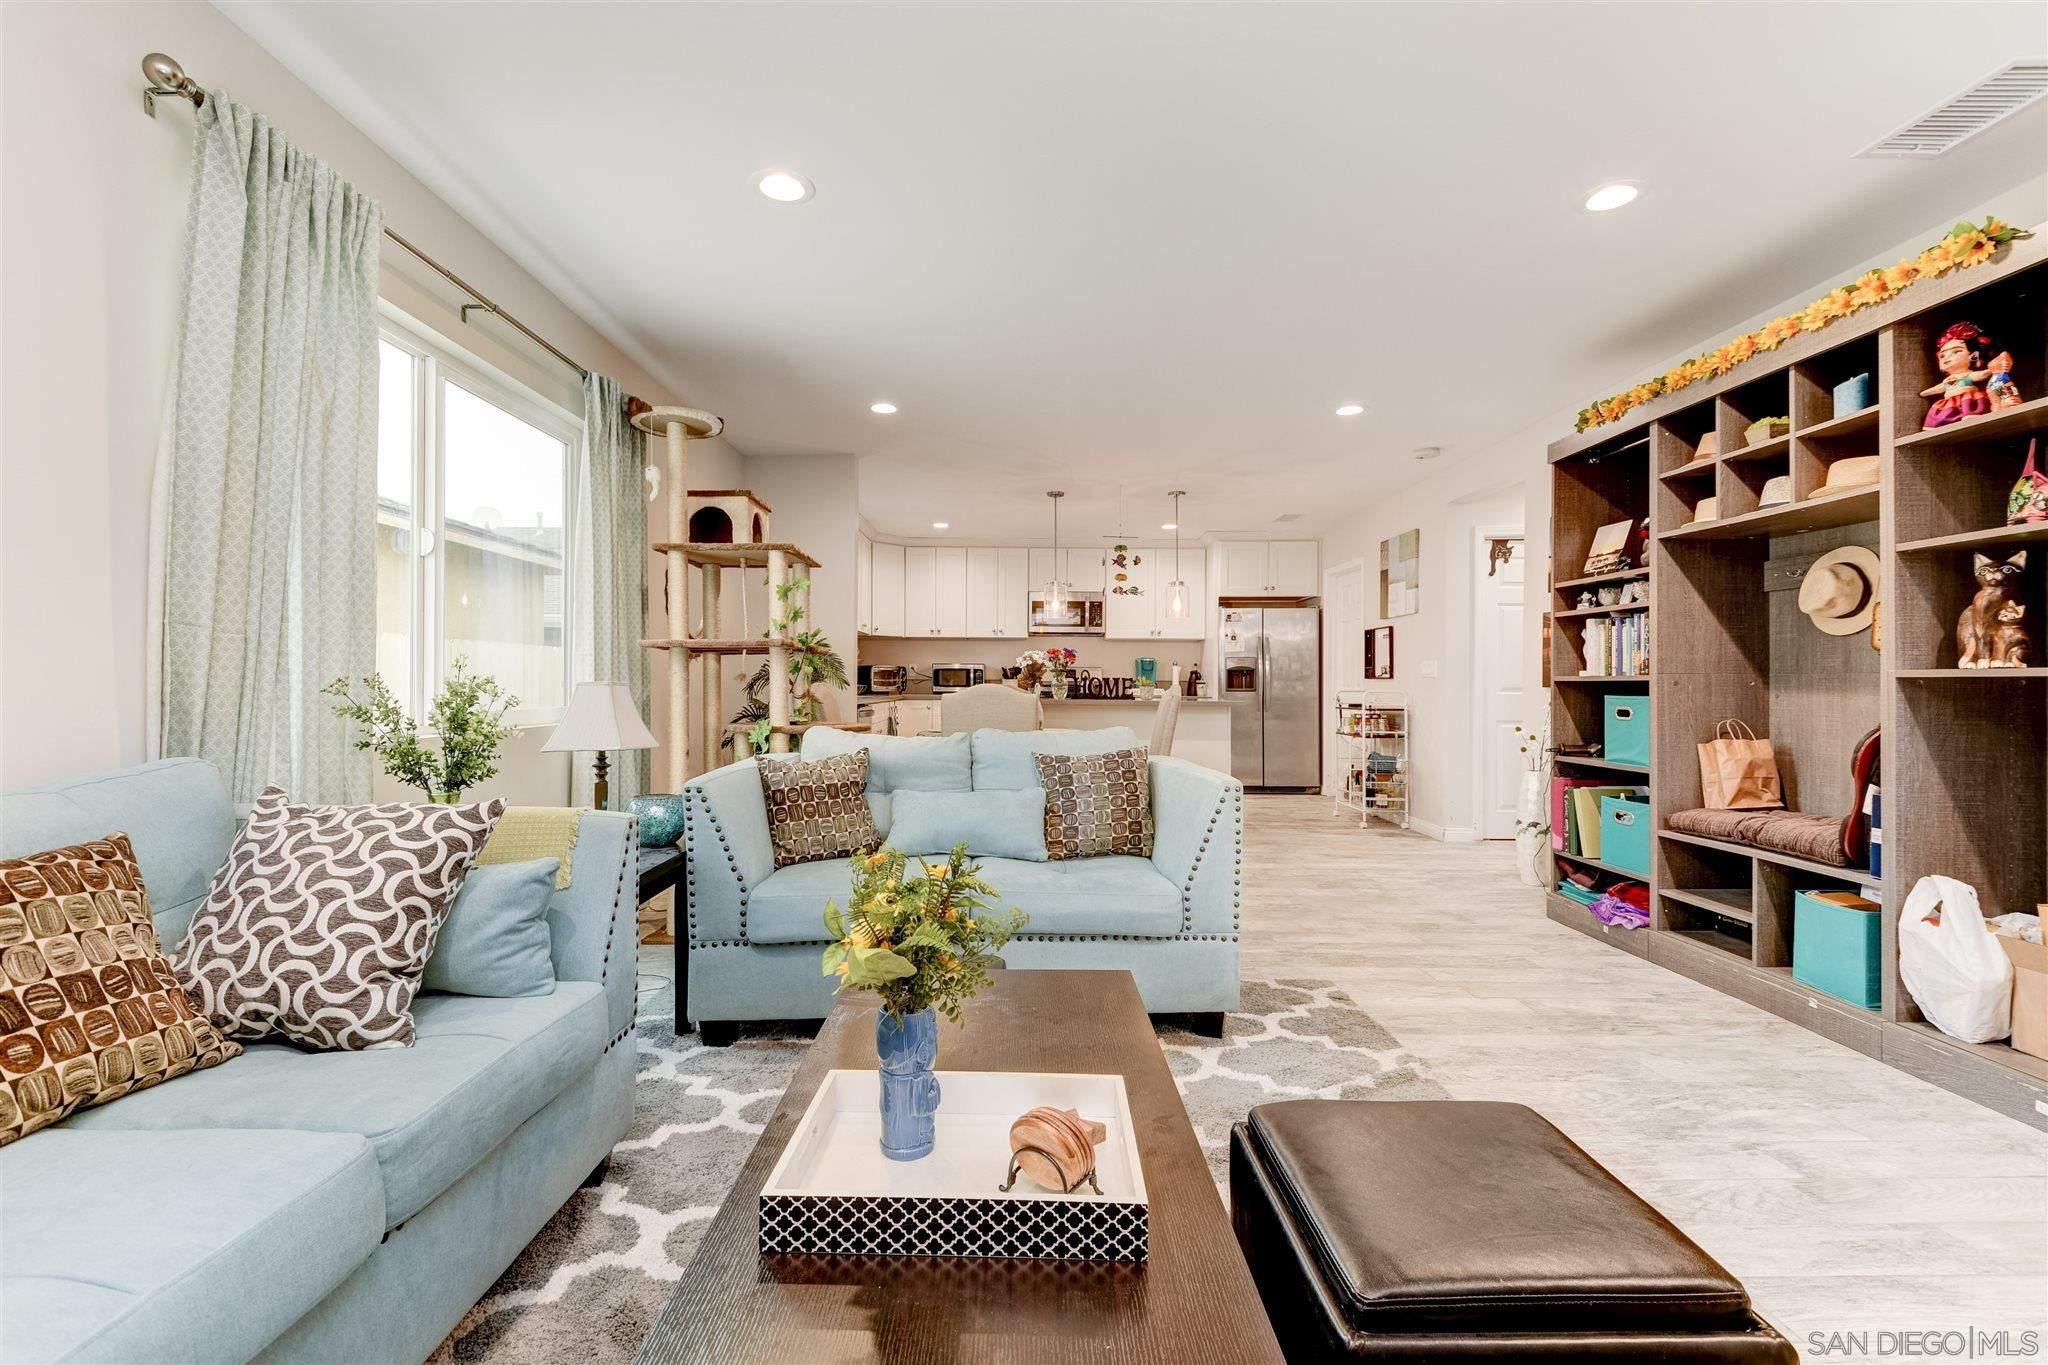 Main Photo: IMPERIAL BEACH House for sale : 3 bedrooms : 1209 Florence St